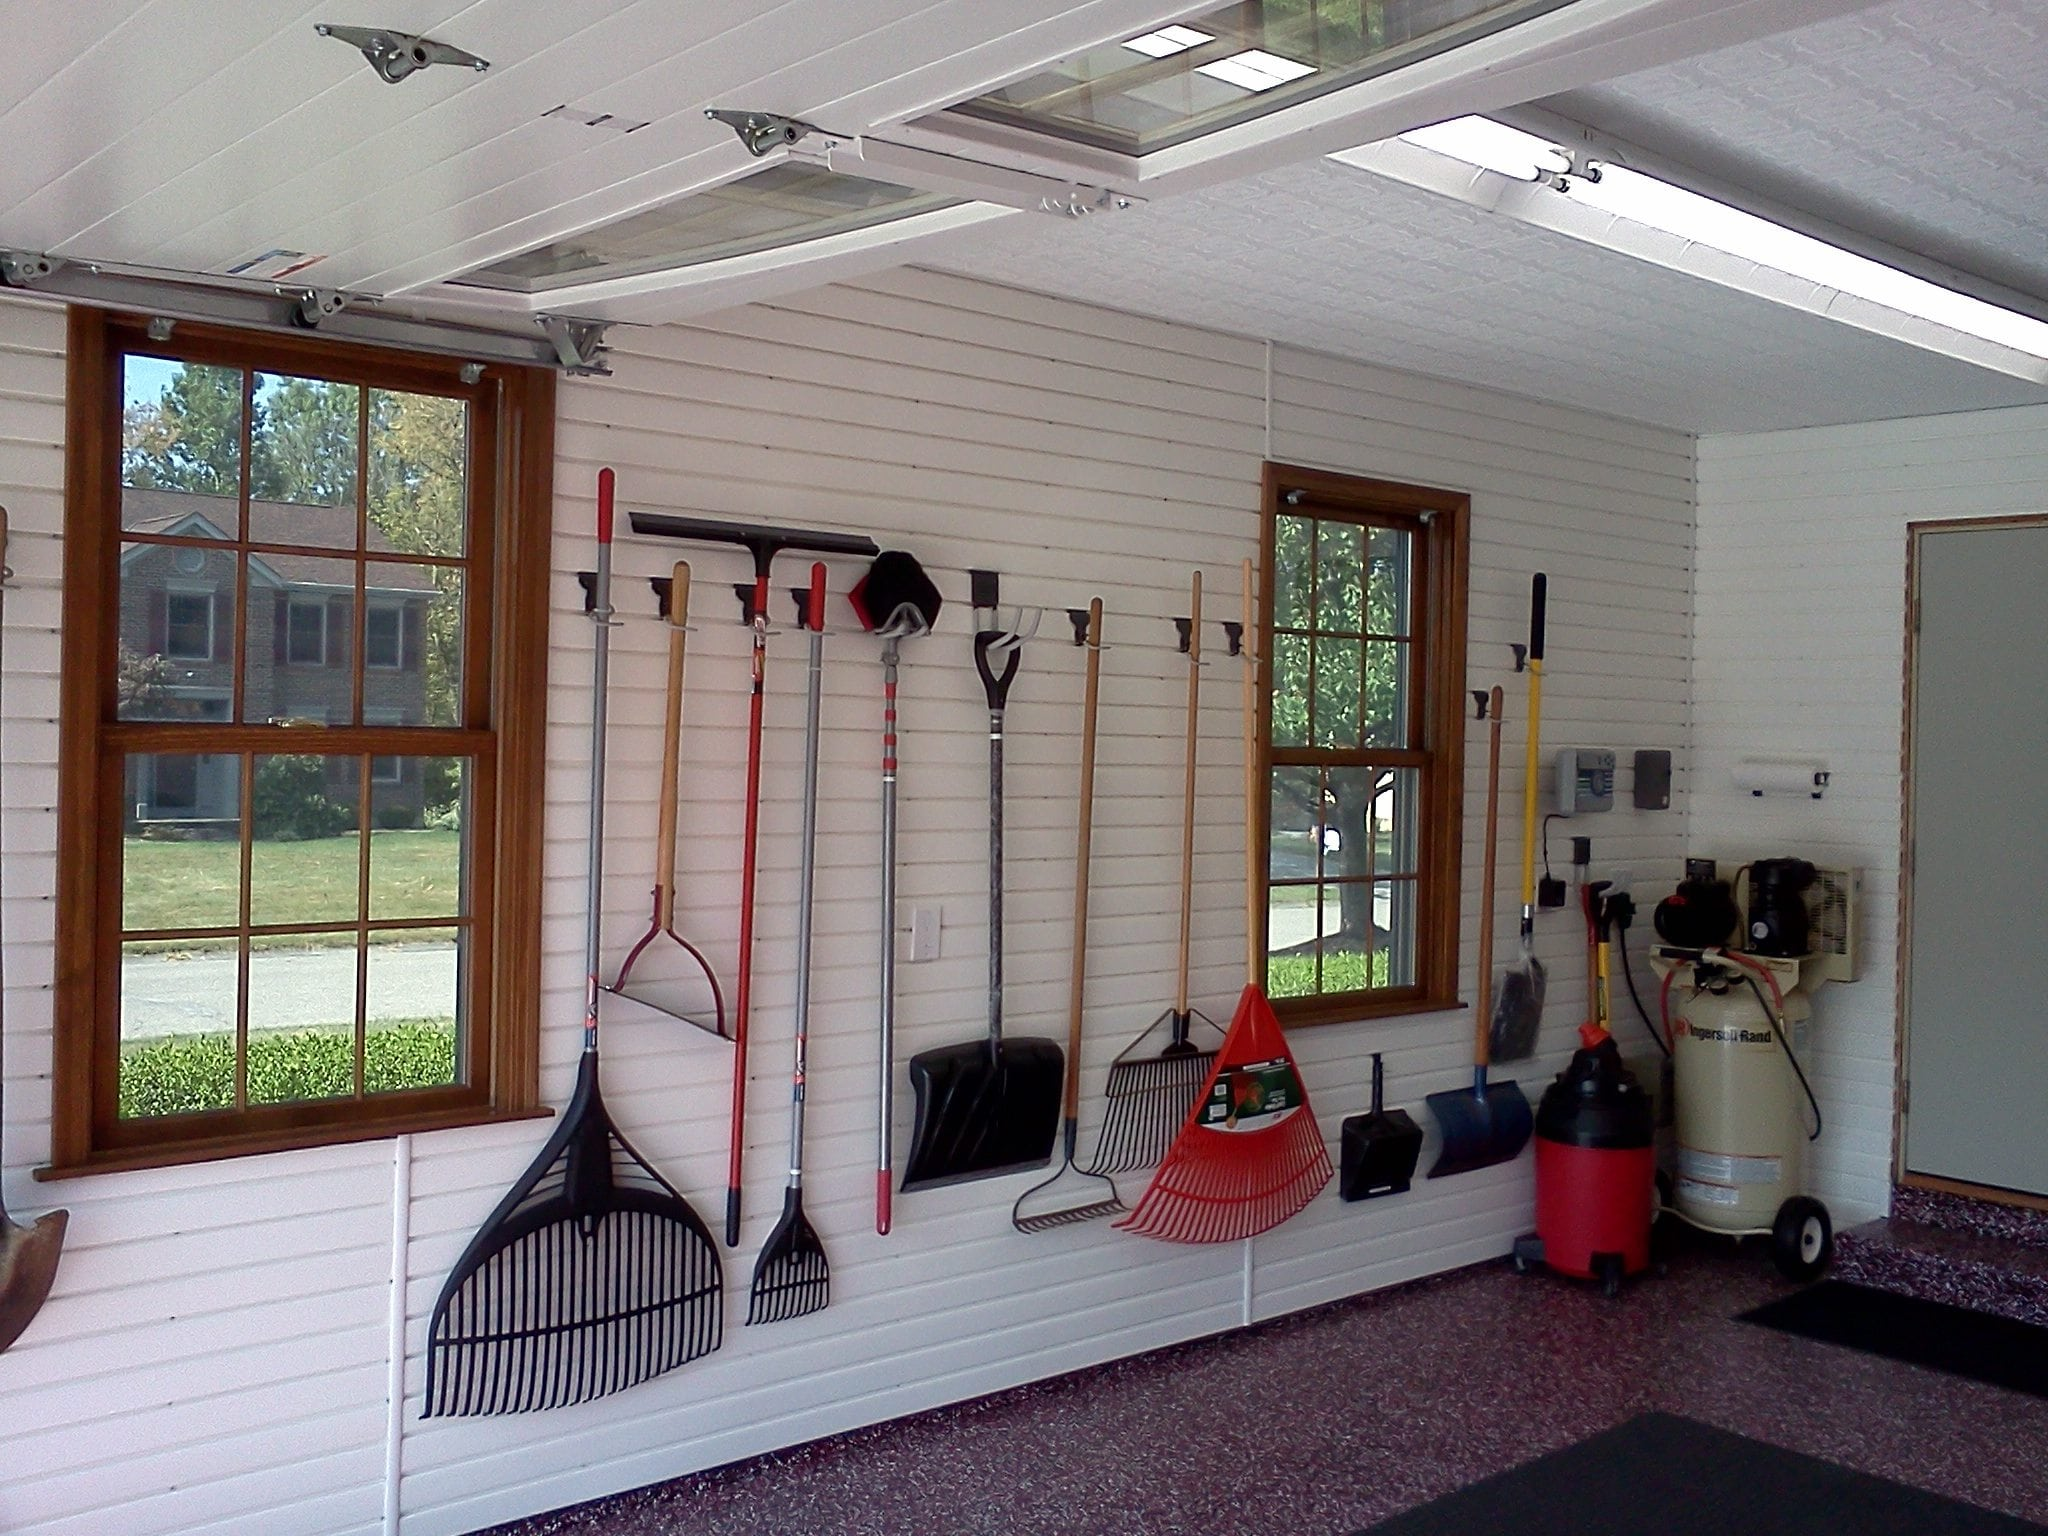 Garage Wall Organization - Ideal Garage Solutions